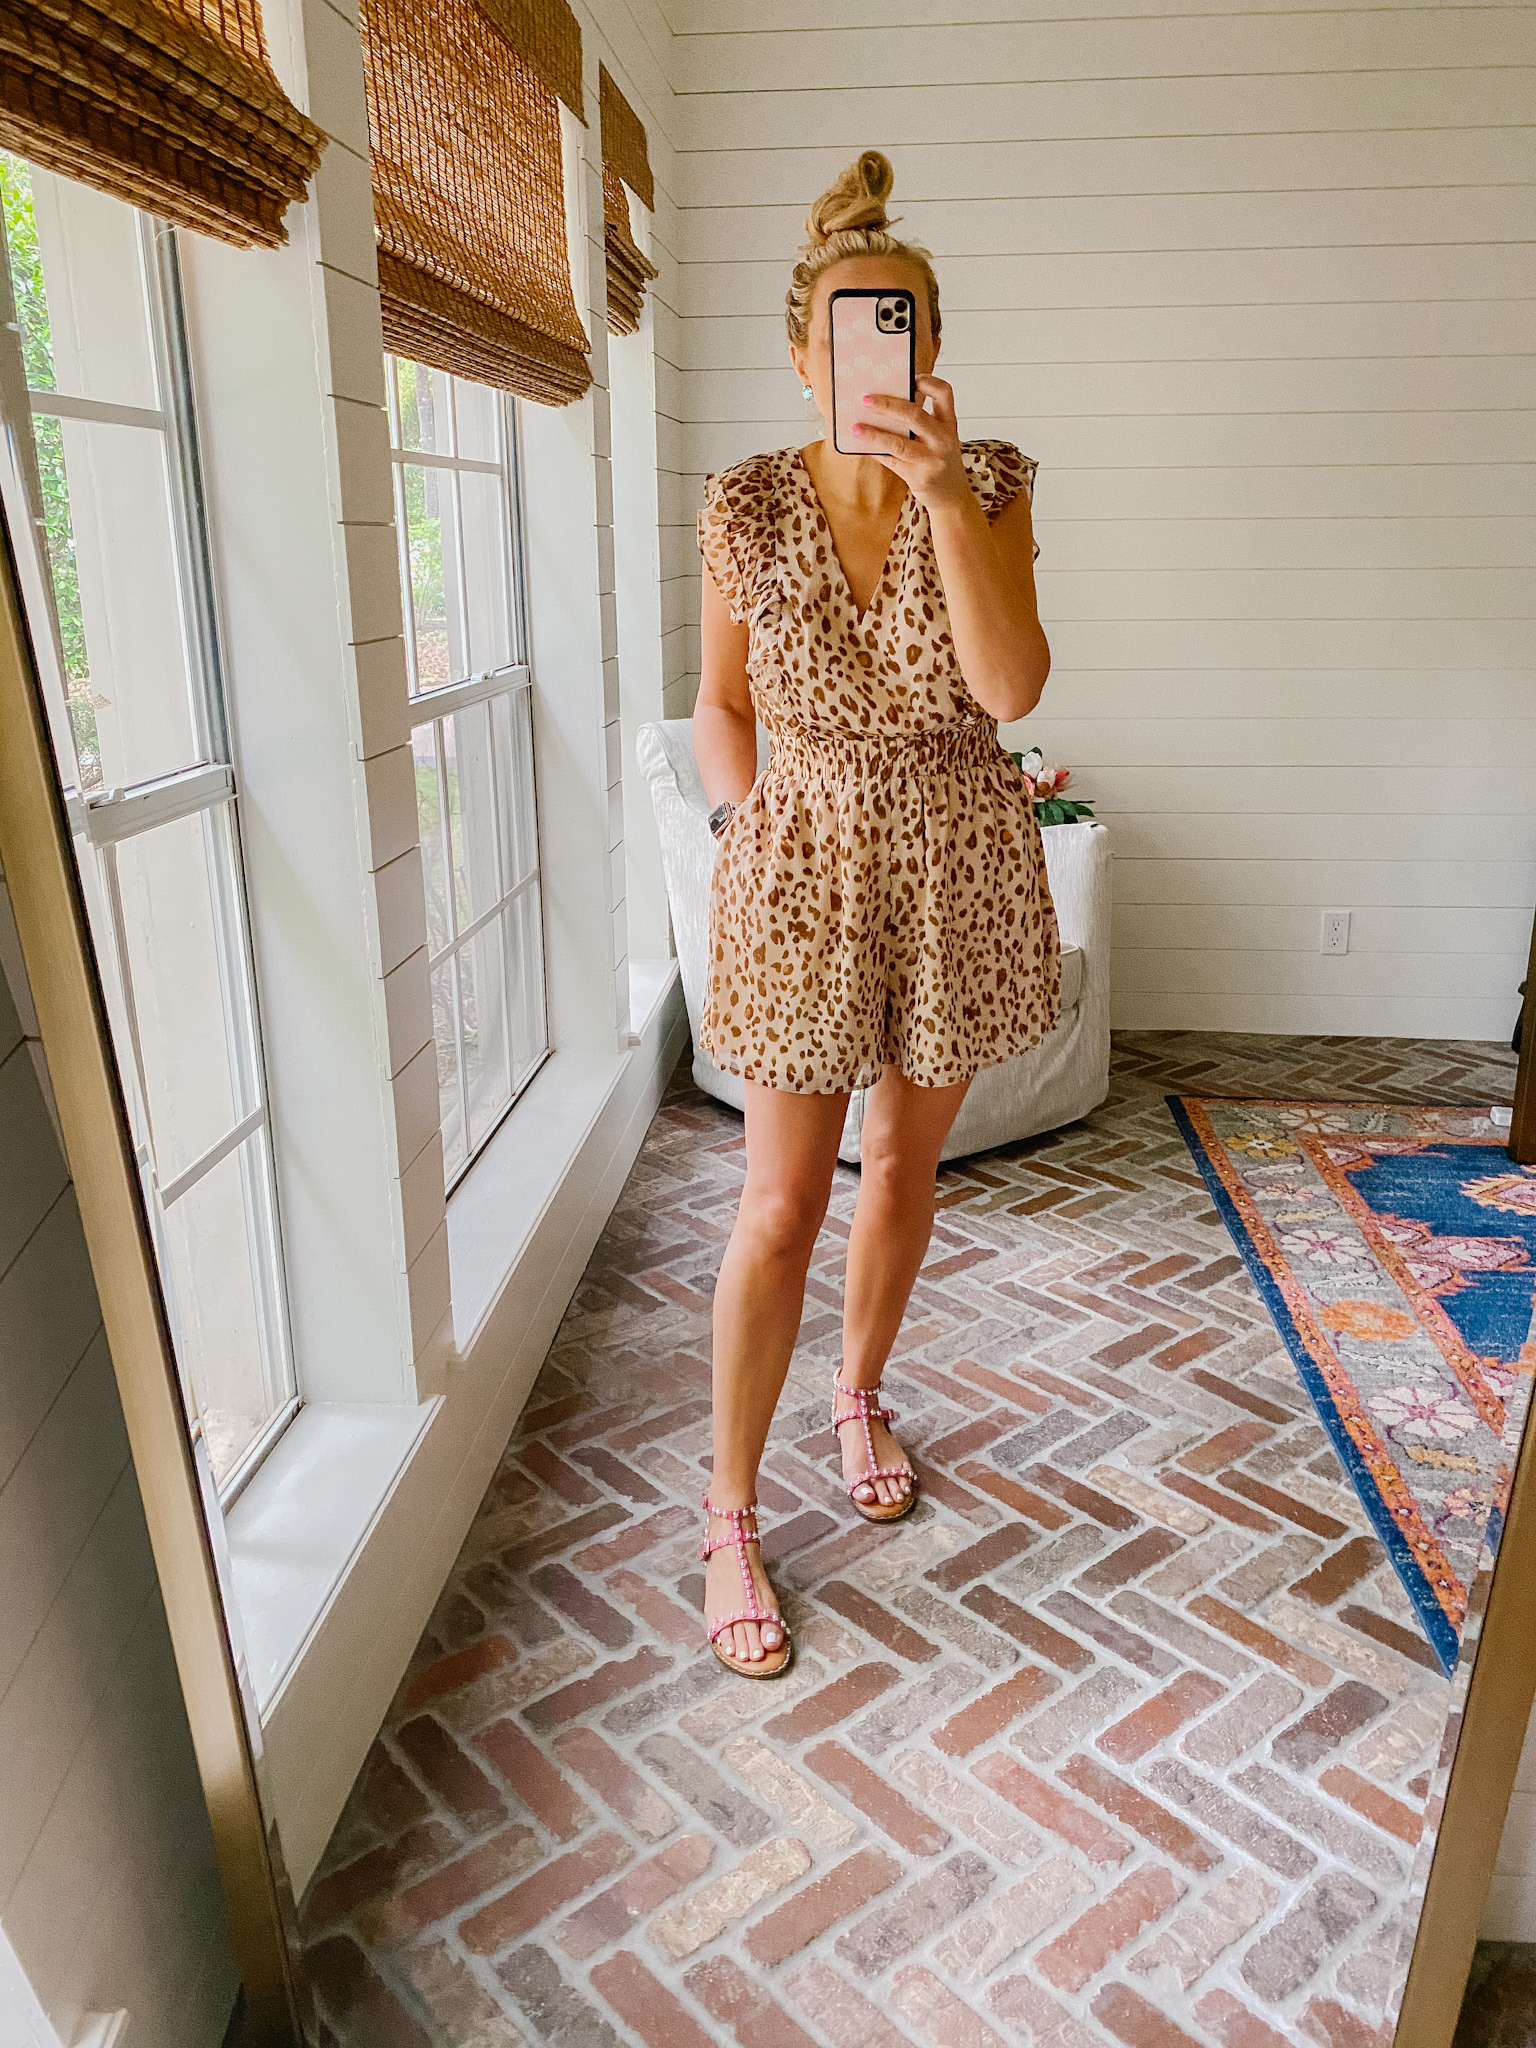 Express New Arrivals by popular Houston fashion blog, The House of Fancy: image of a woman wearing a Express leopard print romper and pink strap sandals.